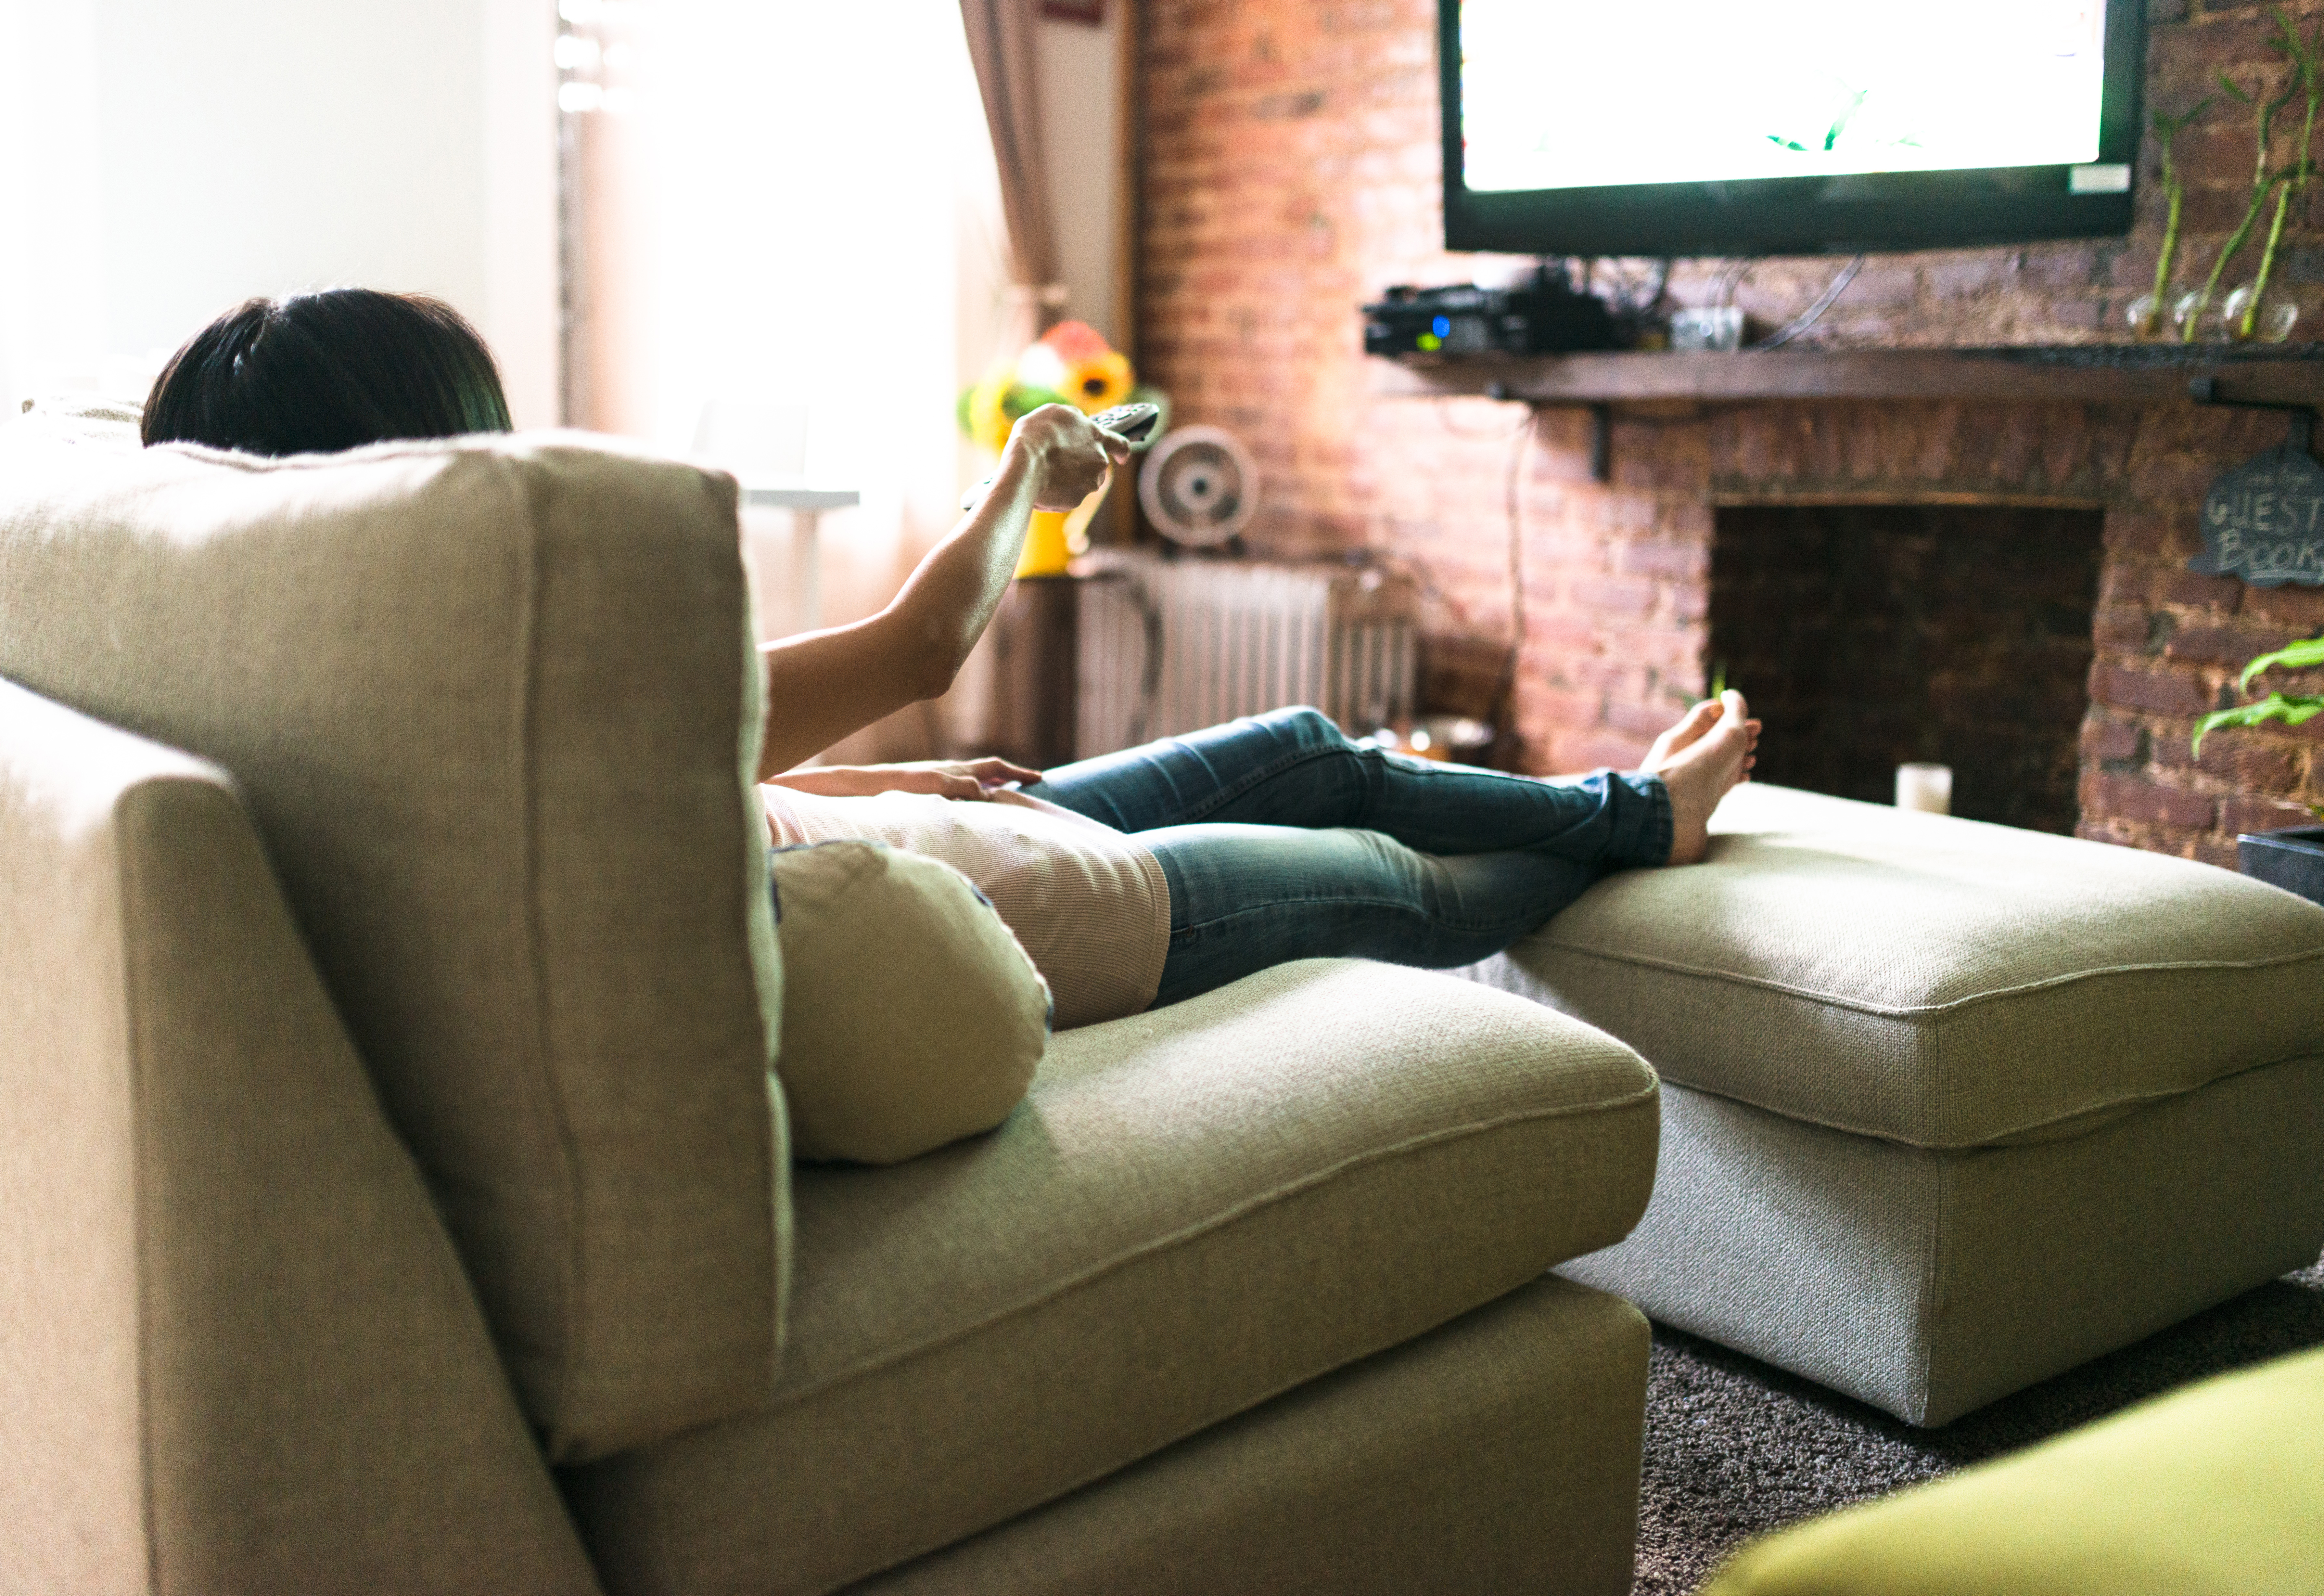 Anxiety and Panic Attacks: Dumb TV Can Help